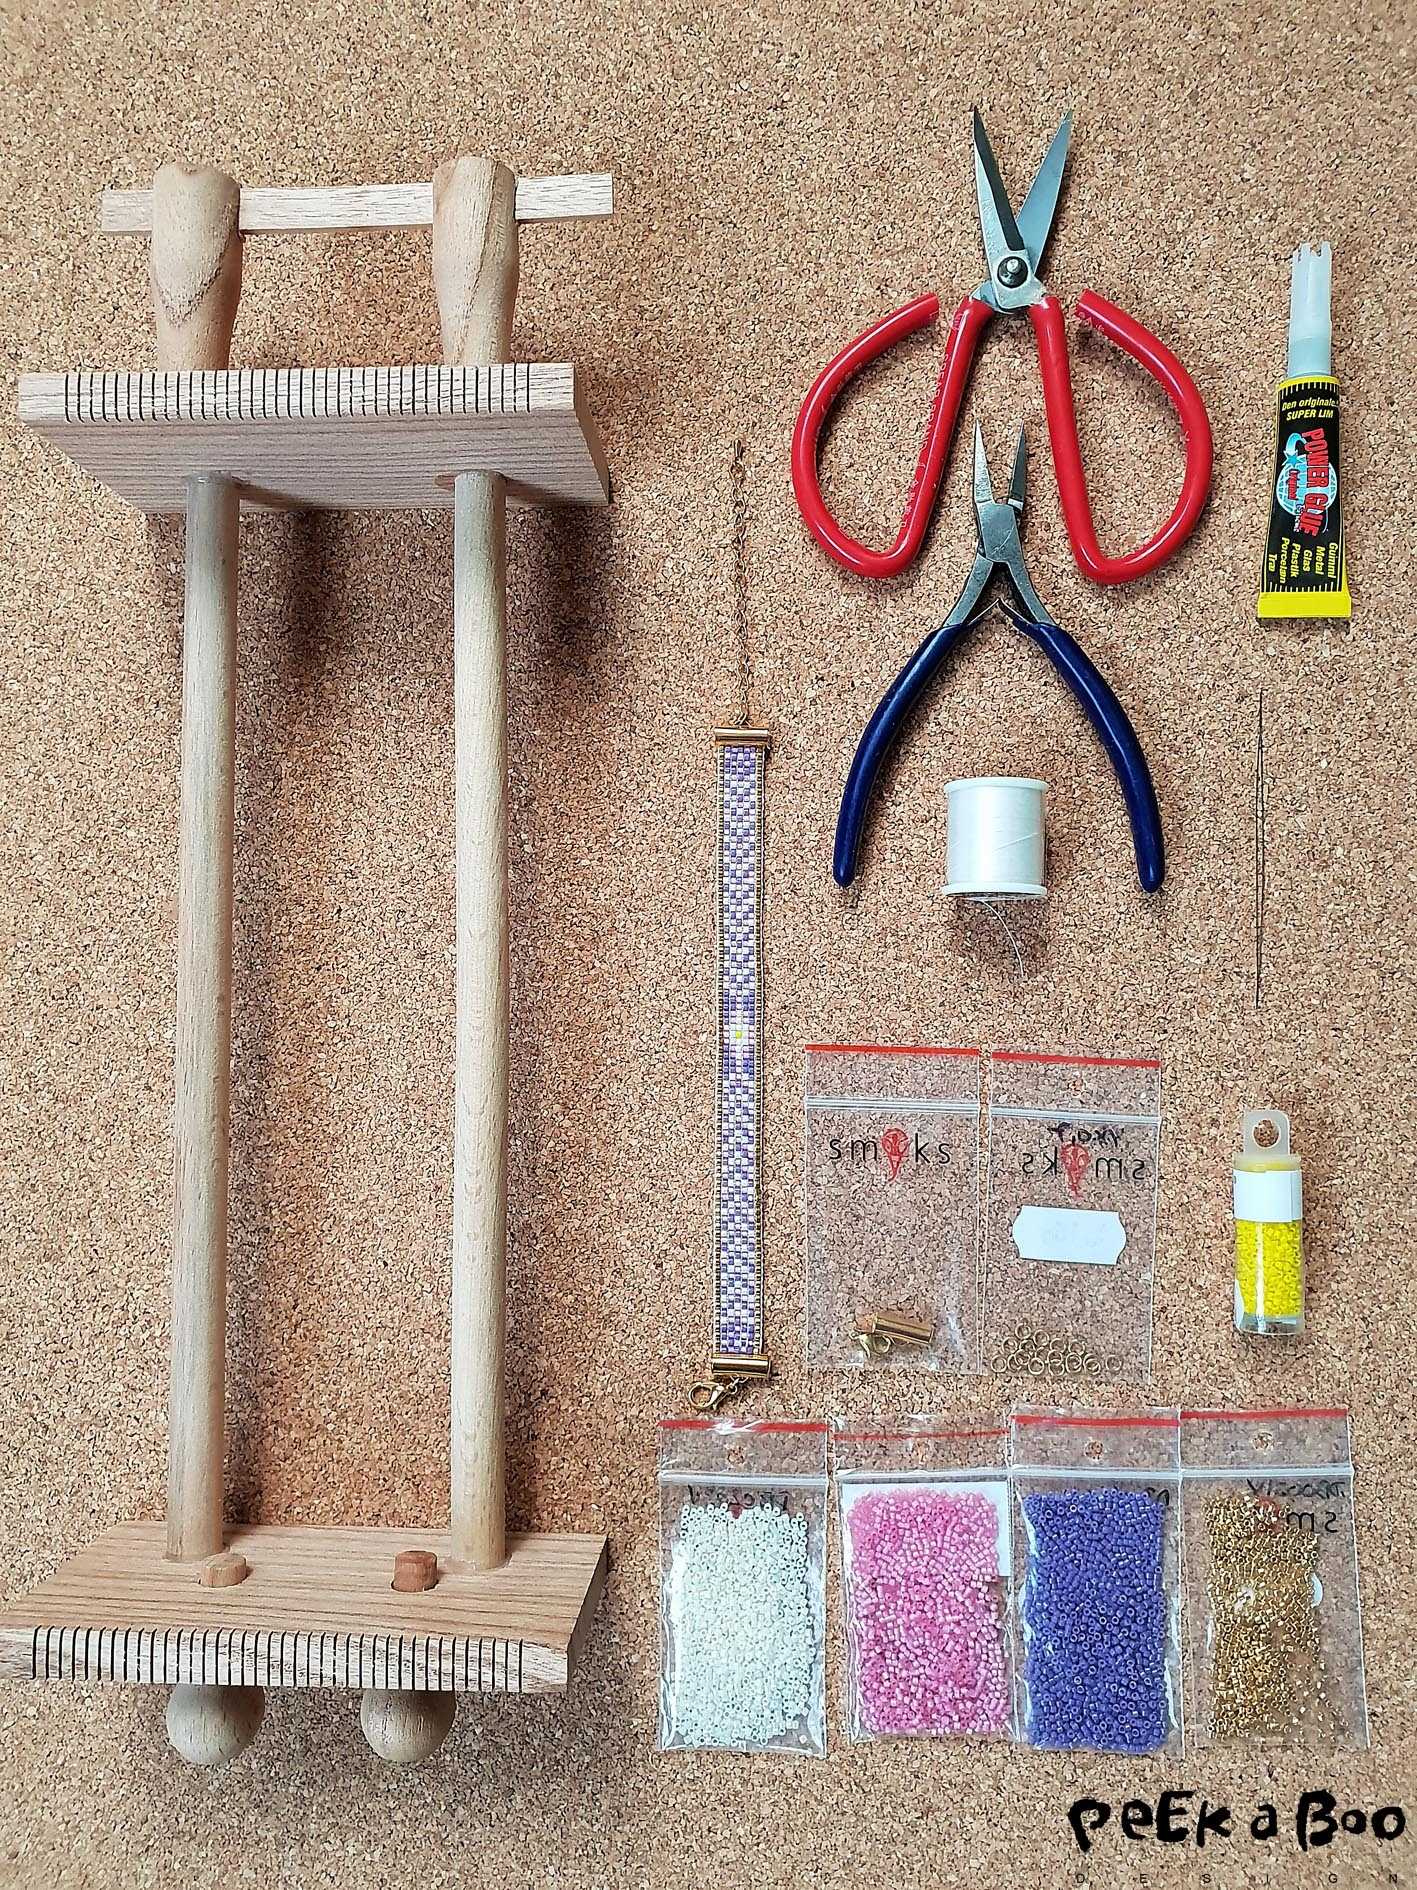 Materials you'll need for this project. You can get the starter kit at smyks.dk and then you only need a pair of scissors and a small pliers.